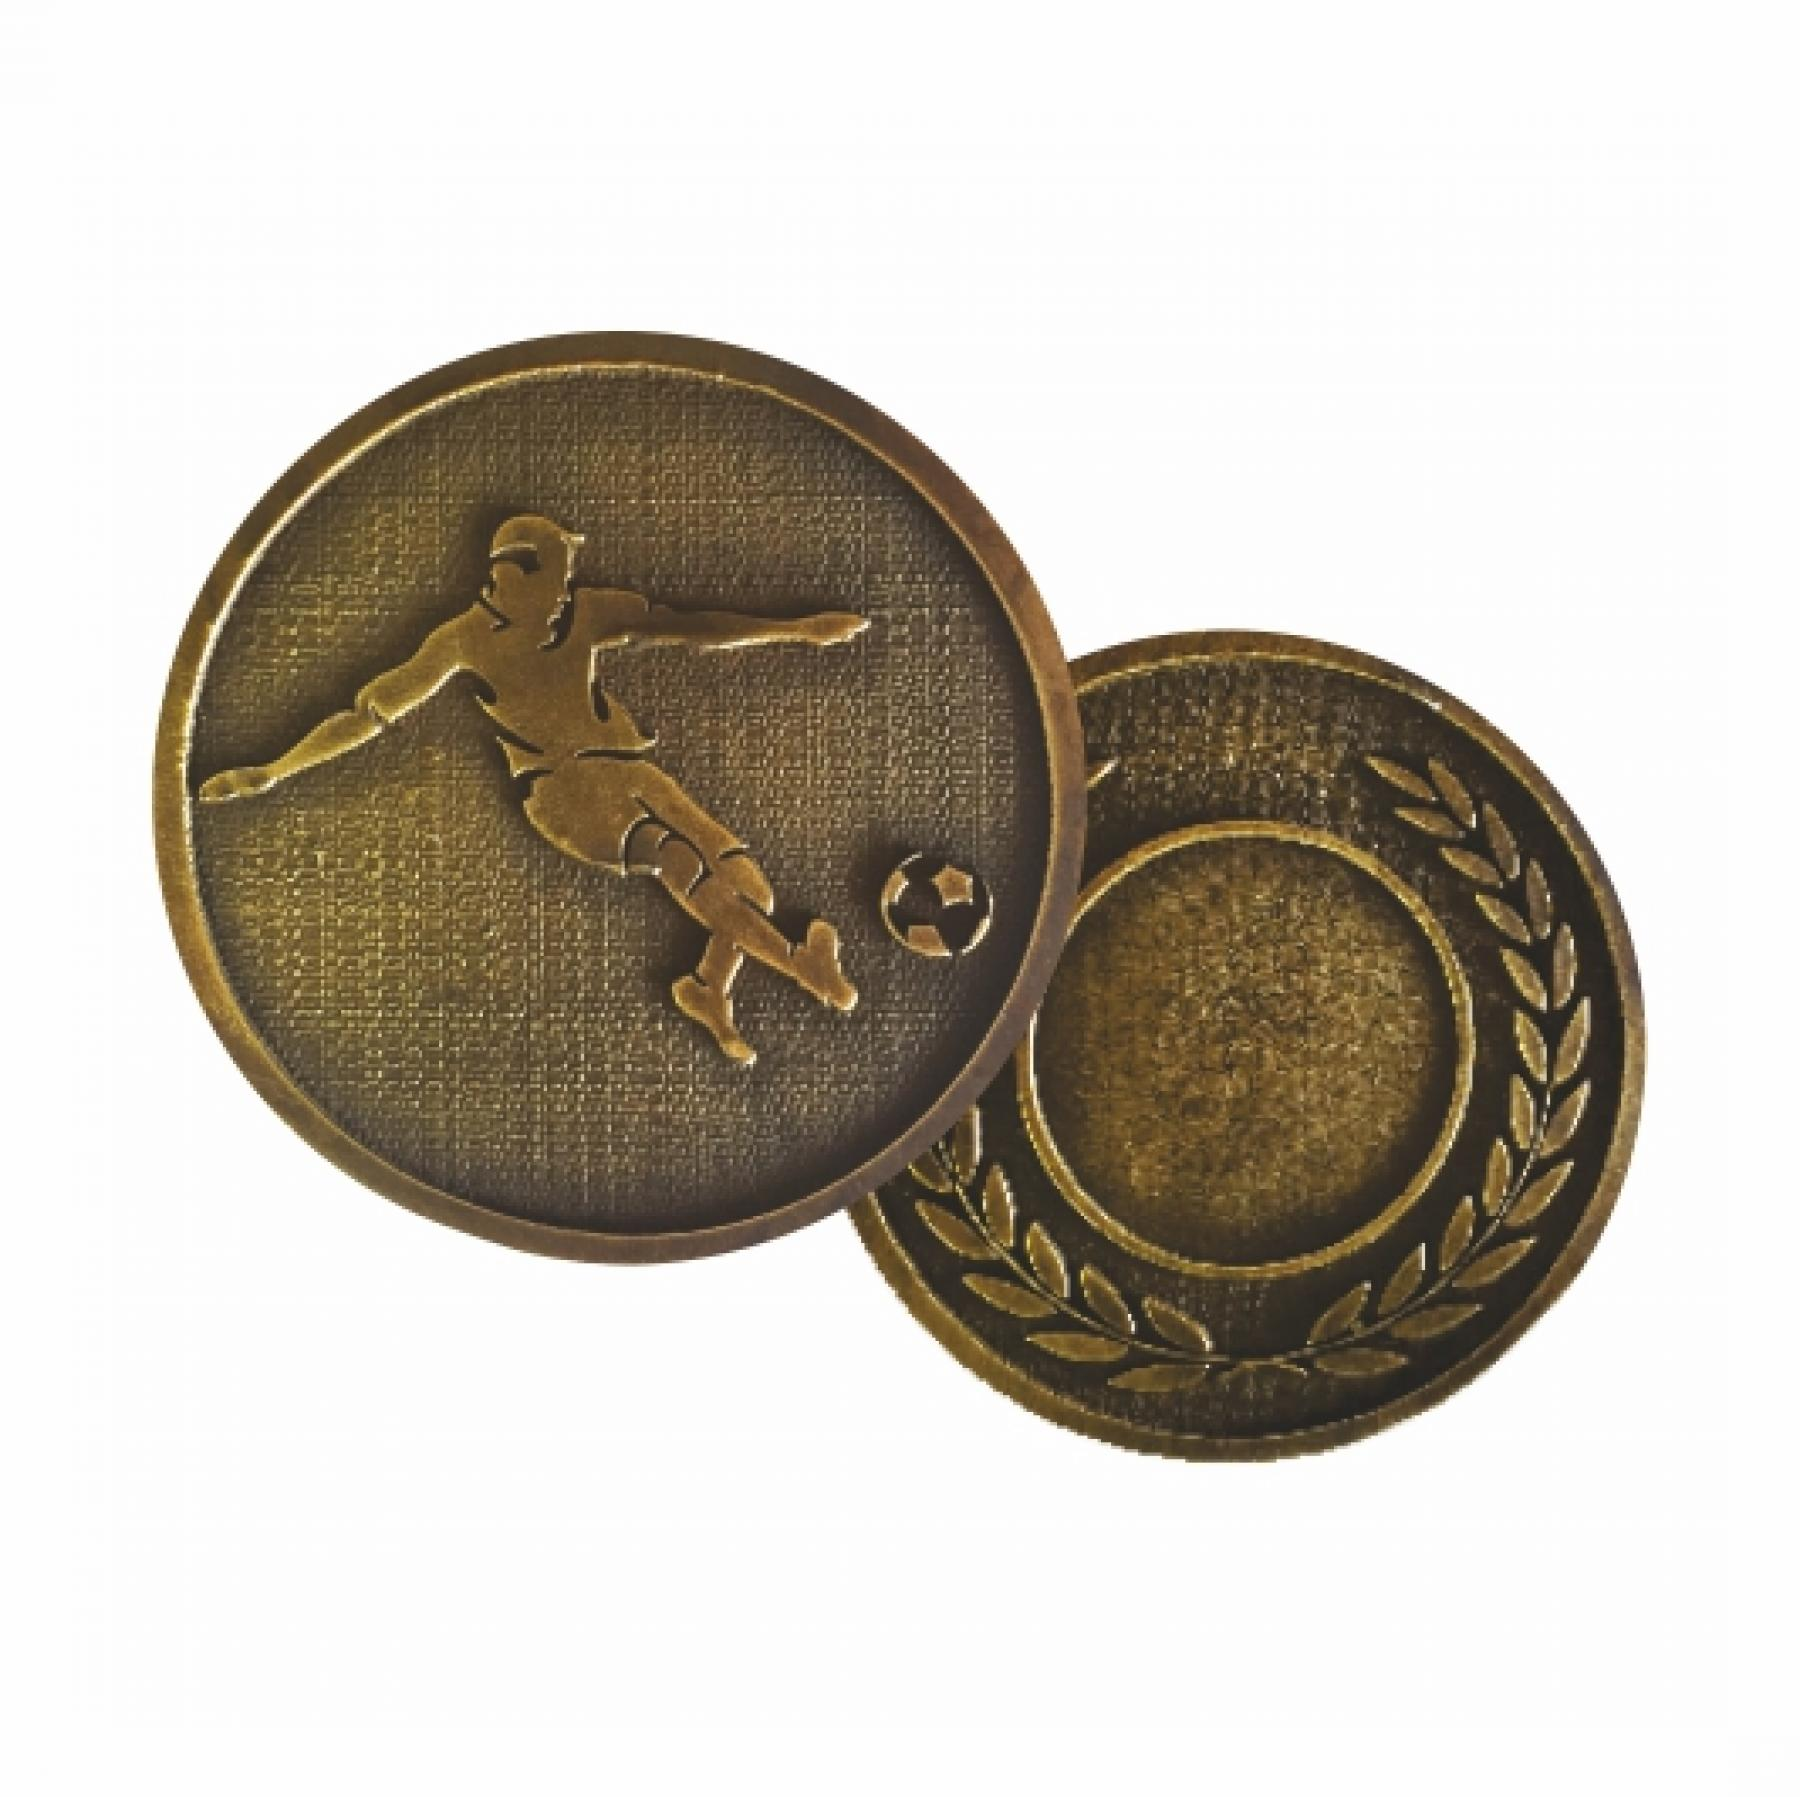 Xco Plated Medals Soccer Bronze